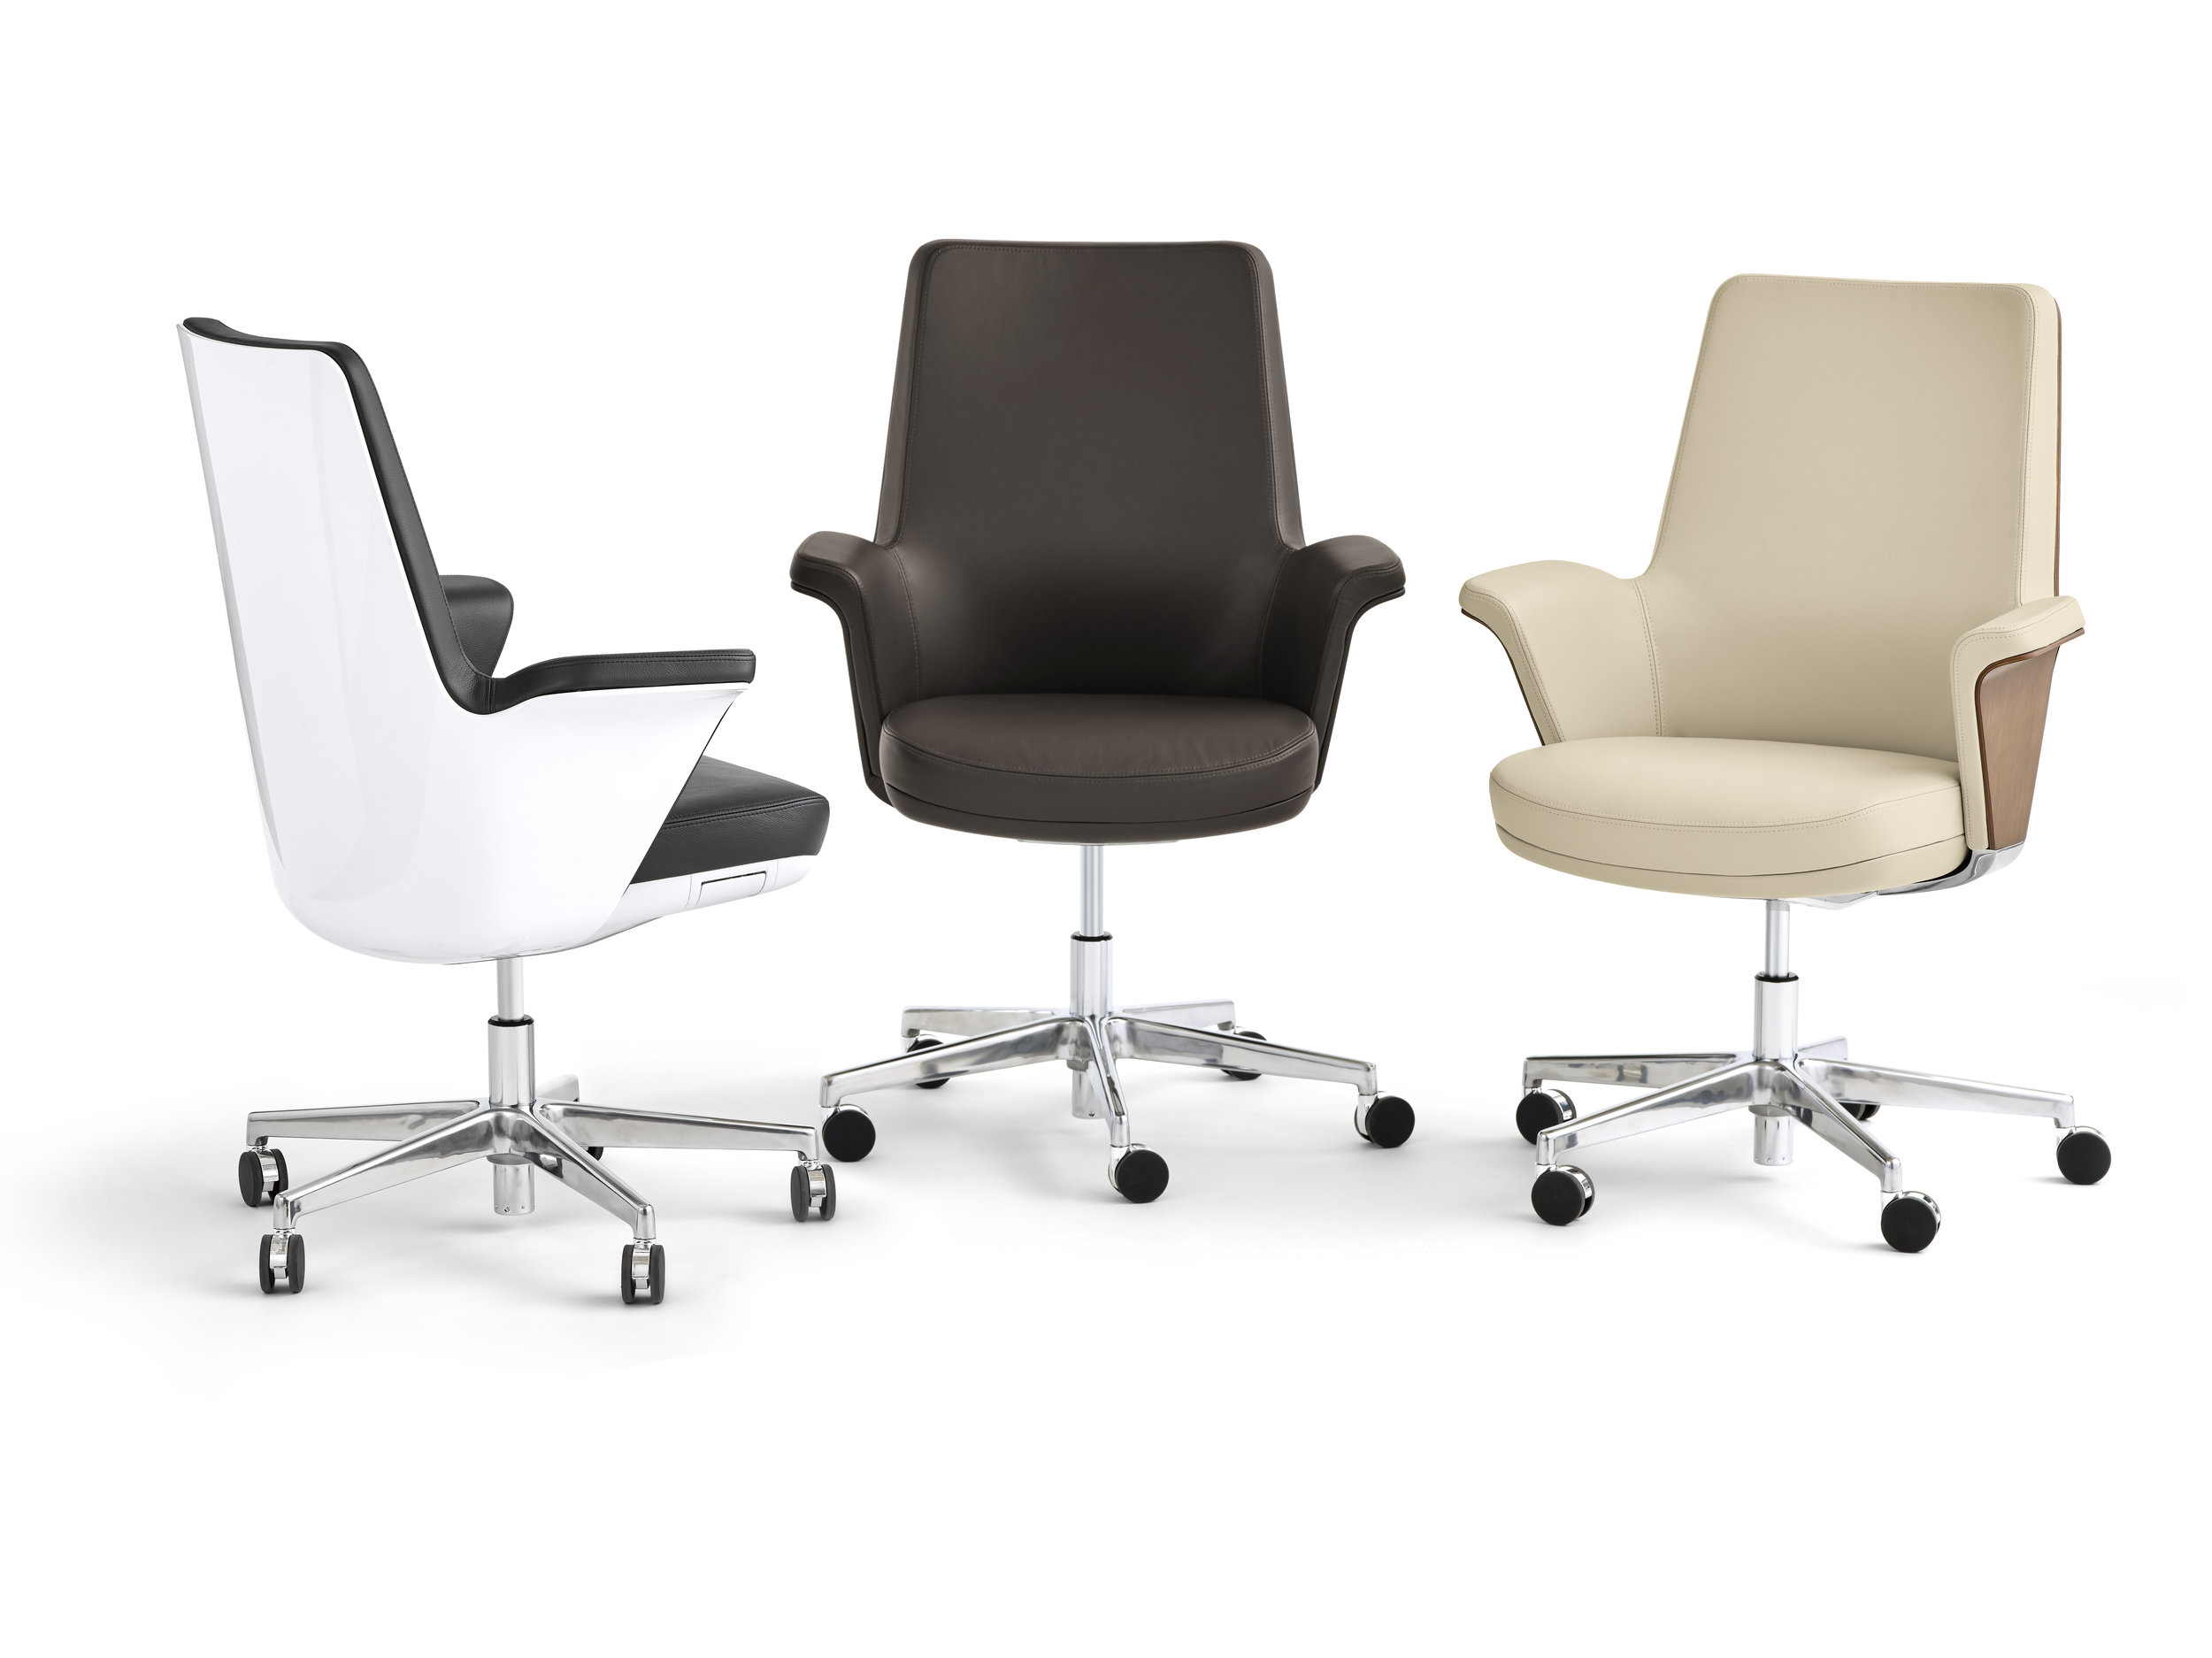 Humanscale_Summa Executive Seating (1).jpg